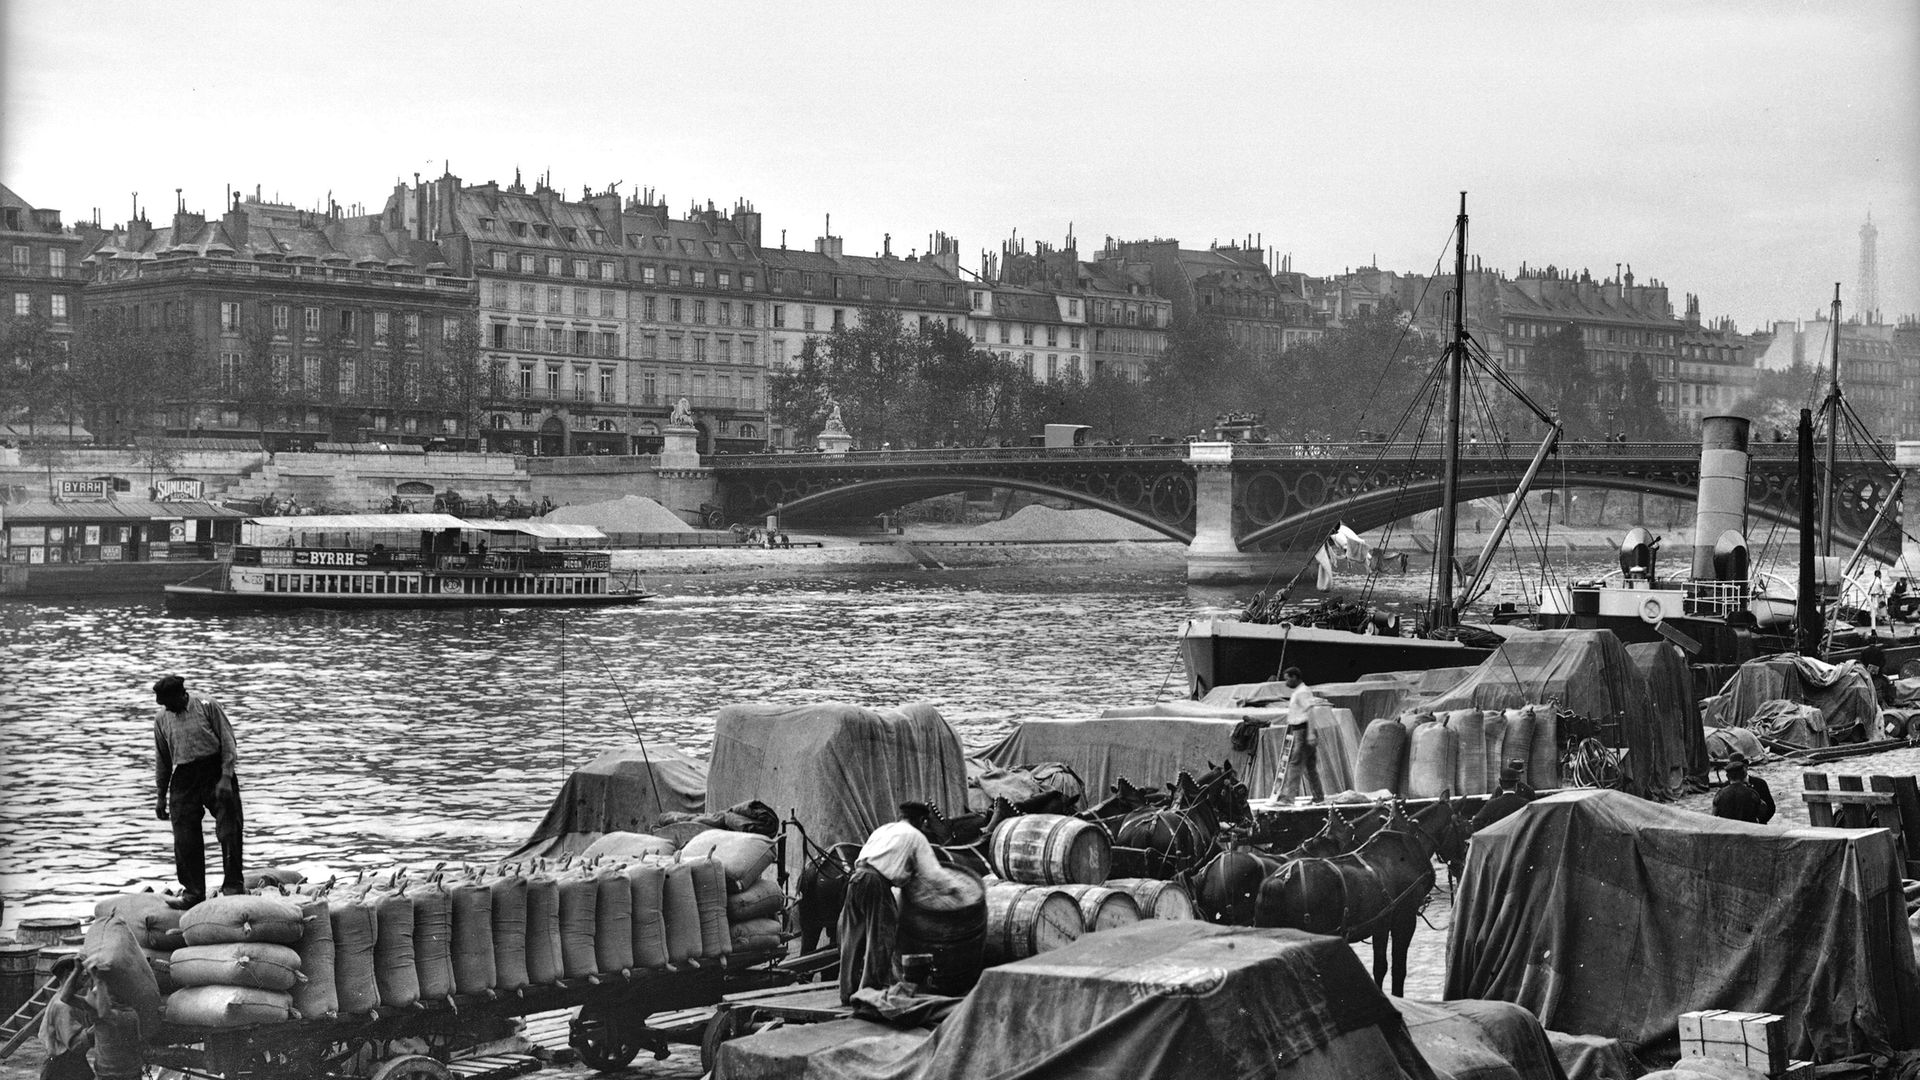 A photograph from around 1890 showing the stretch of the Seine where the body of the unidentified woman was recovered from the water - Credit: Roger Viollet via Getty Images